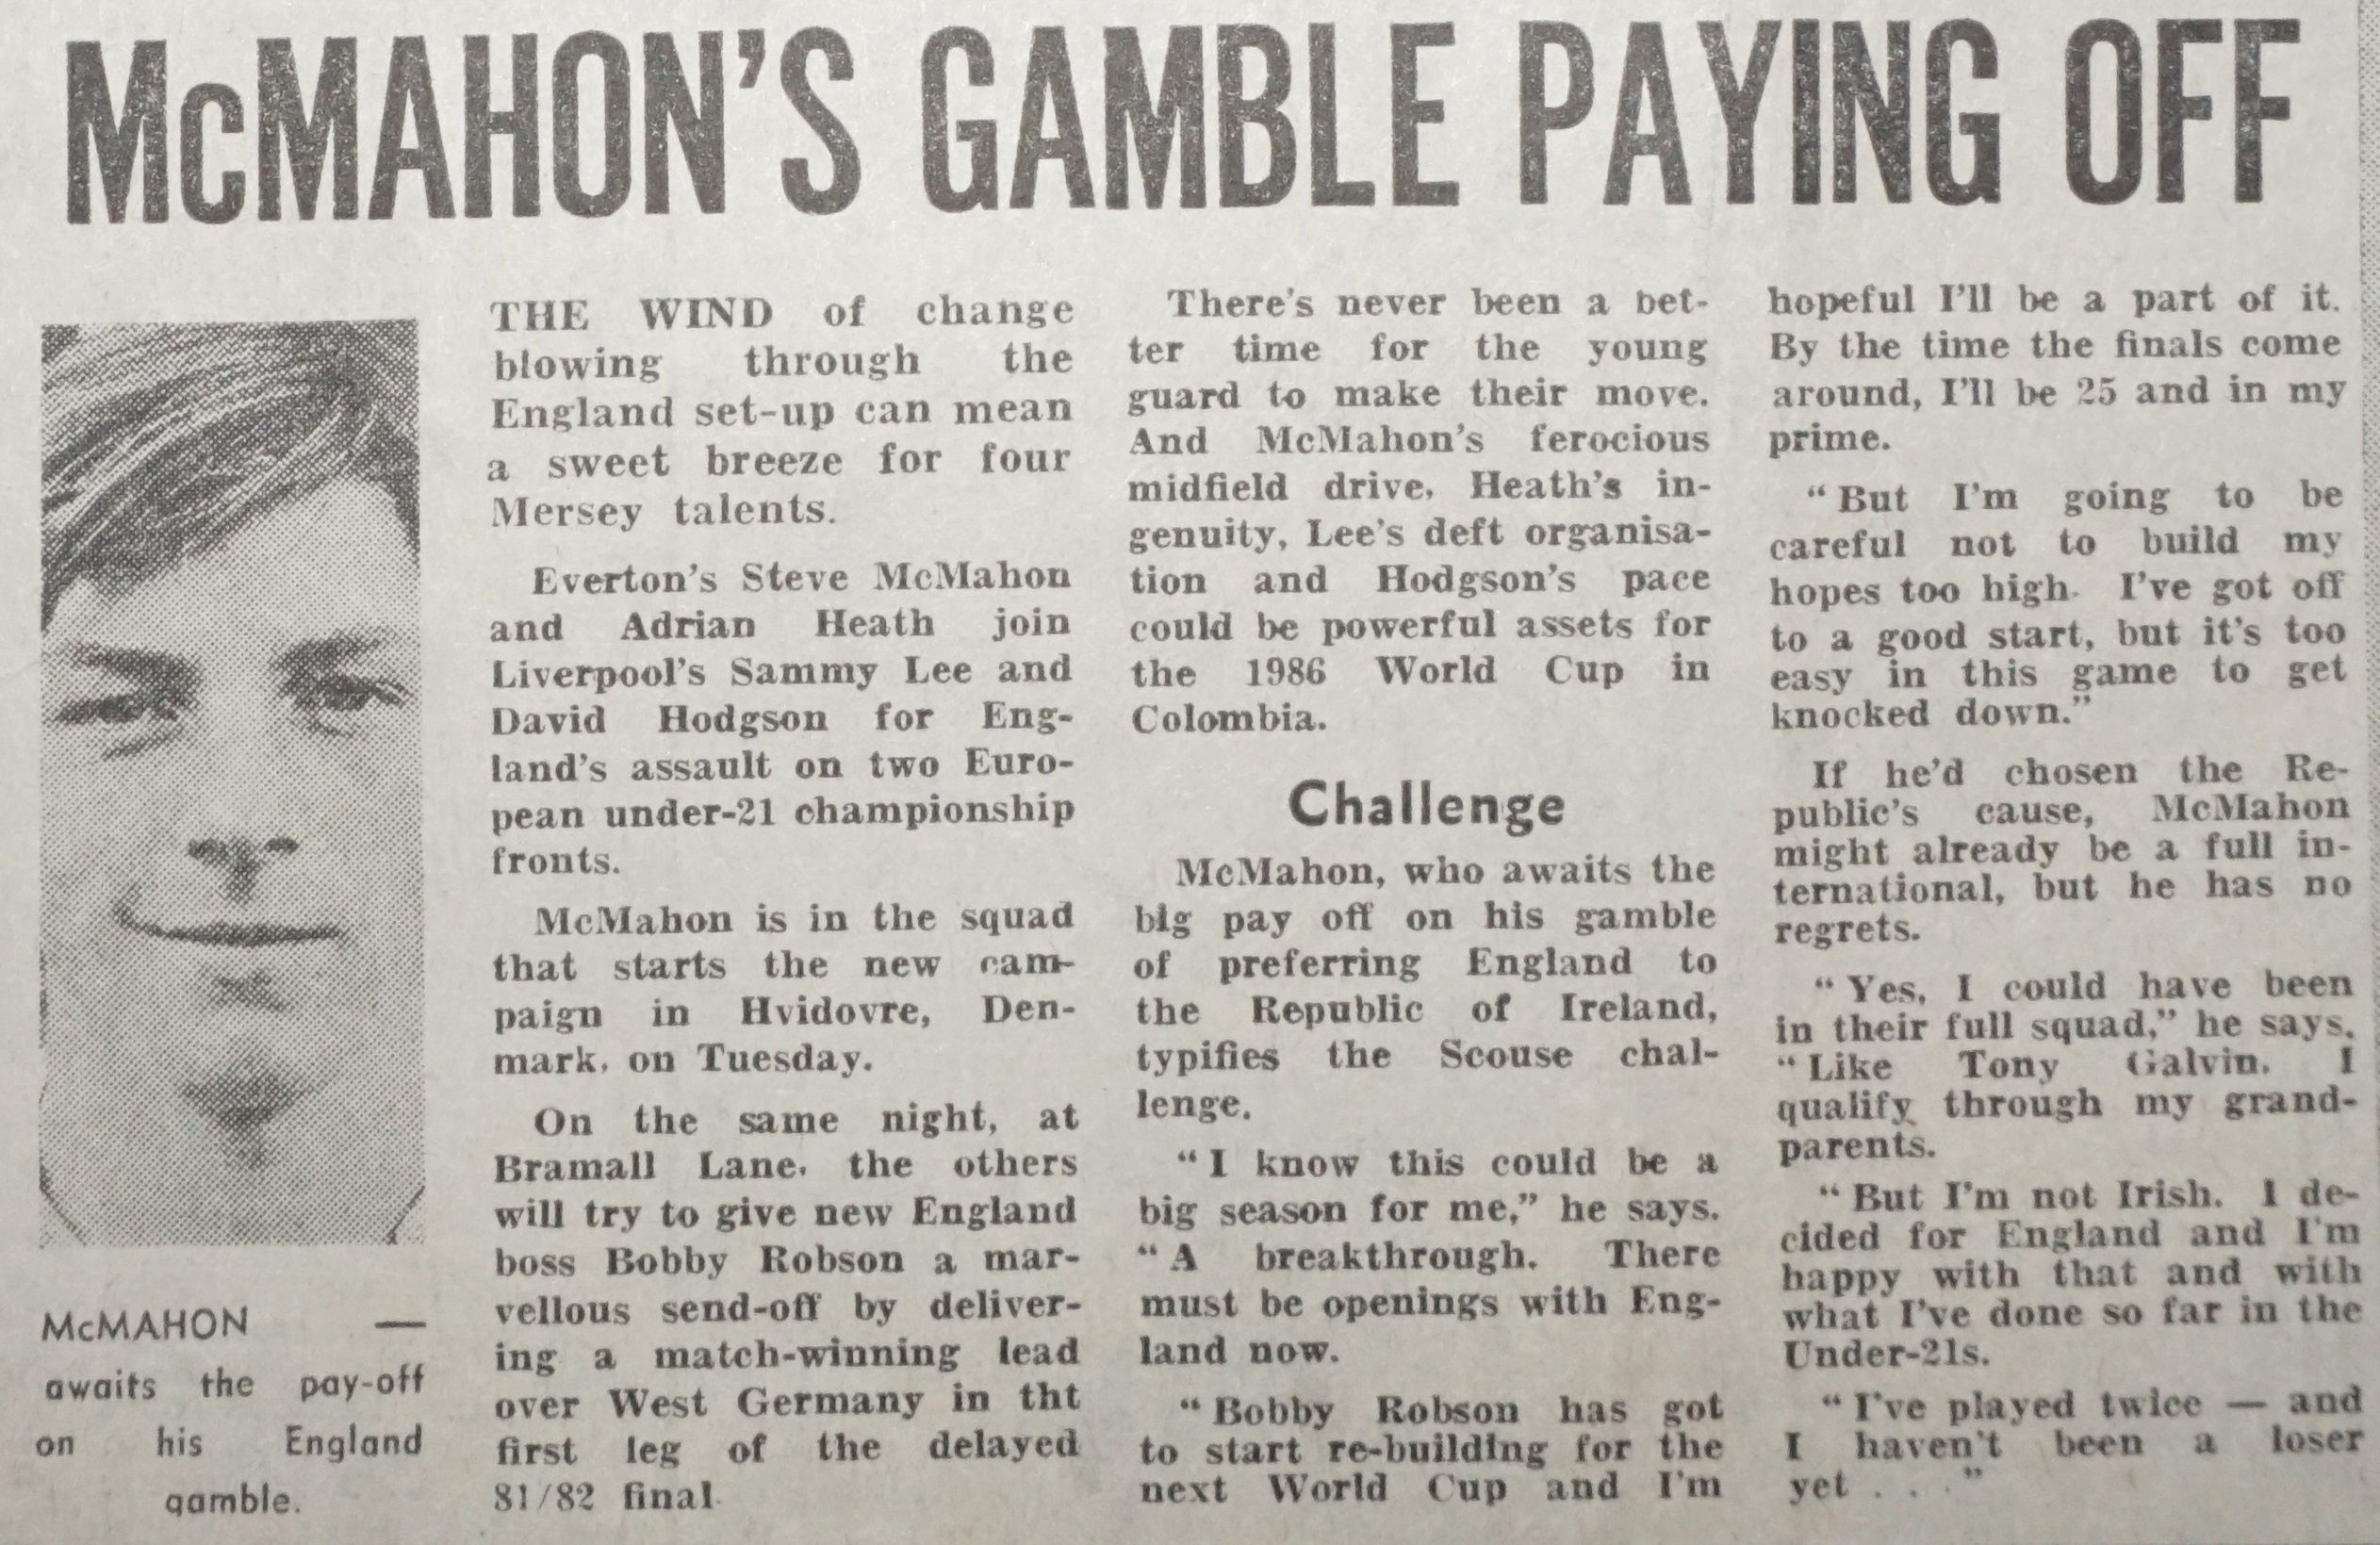 McMahon's gamble paying off - September 1983